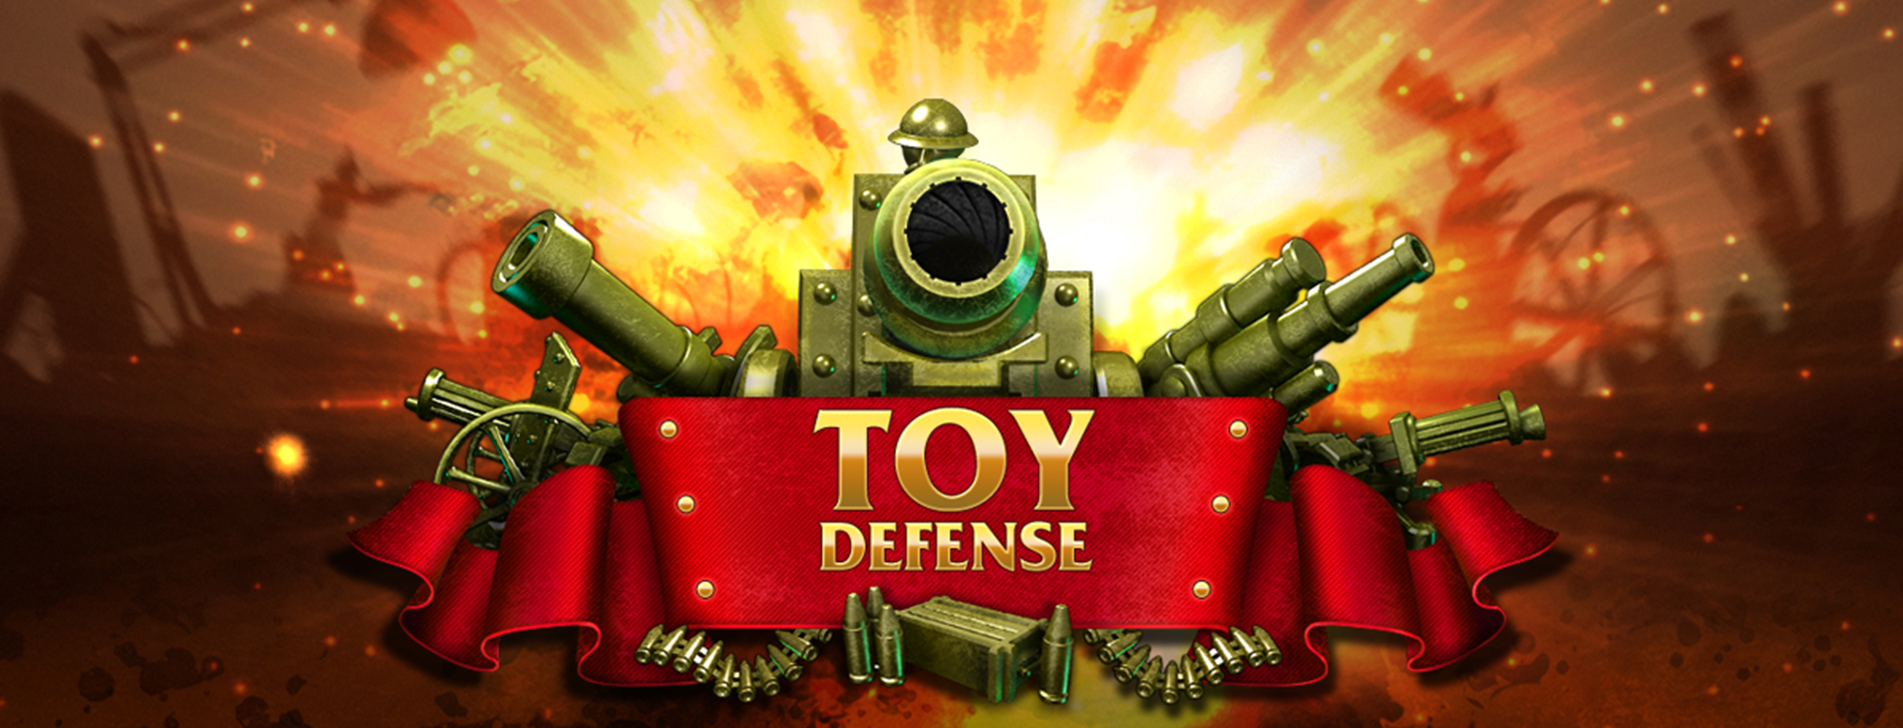 Game Localization: Toy Defense